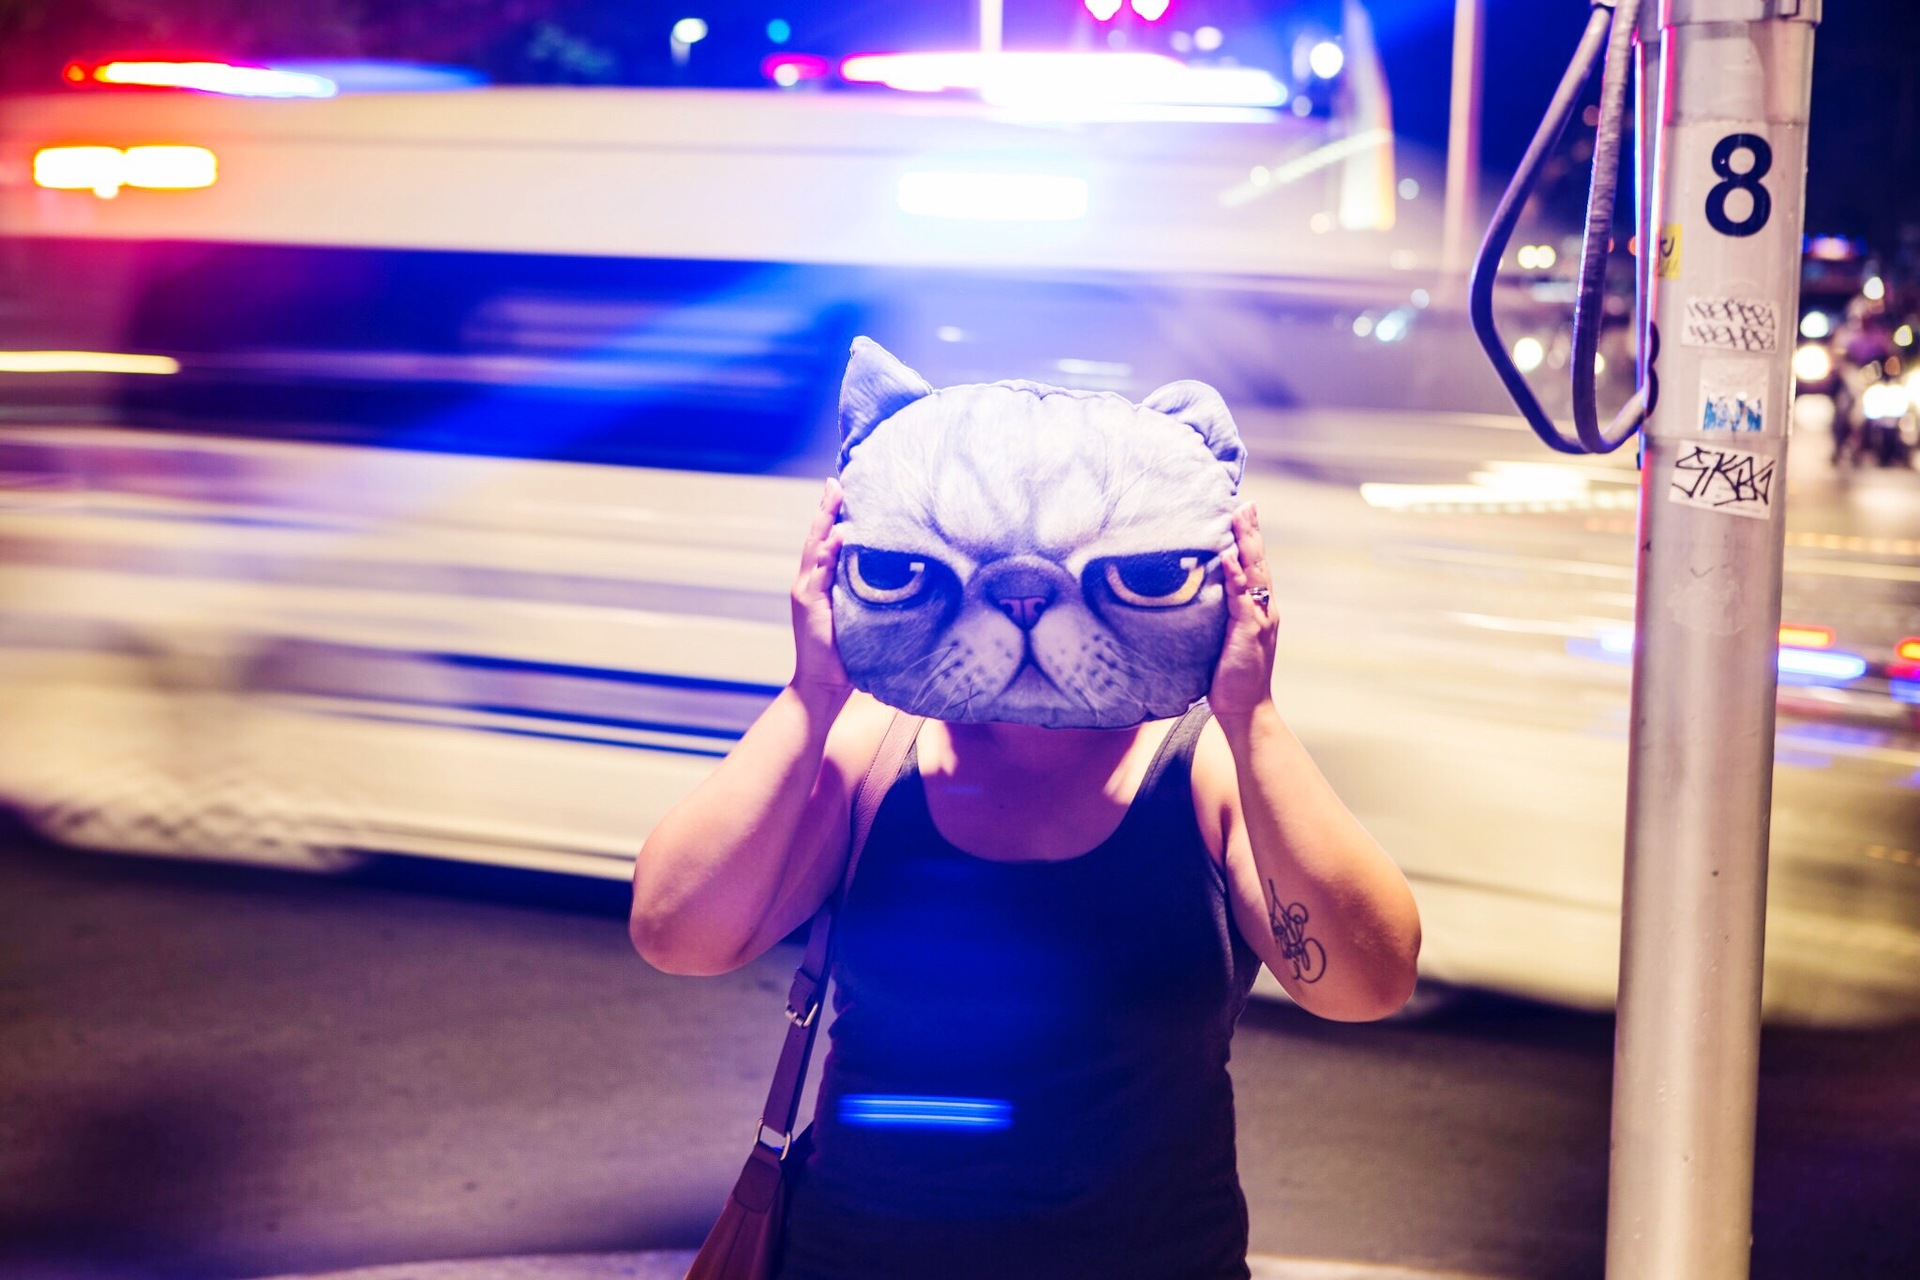 A tattooed woman holding a cat pillow. Bright city lights in the background. Cool urban scene